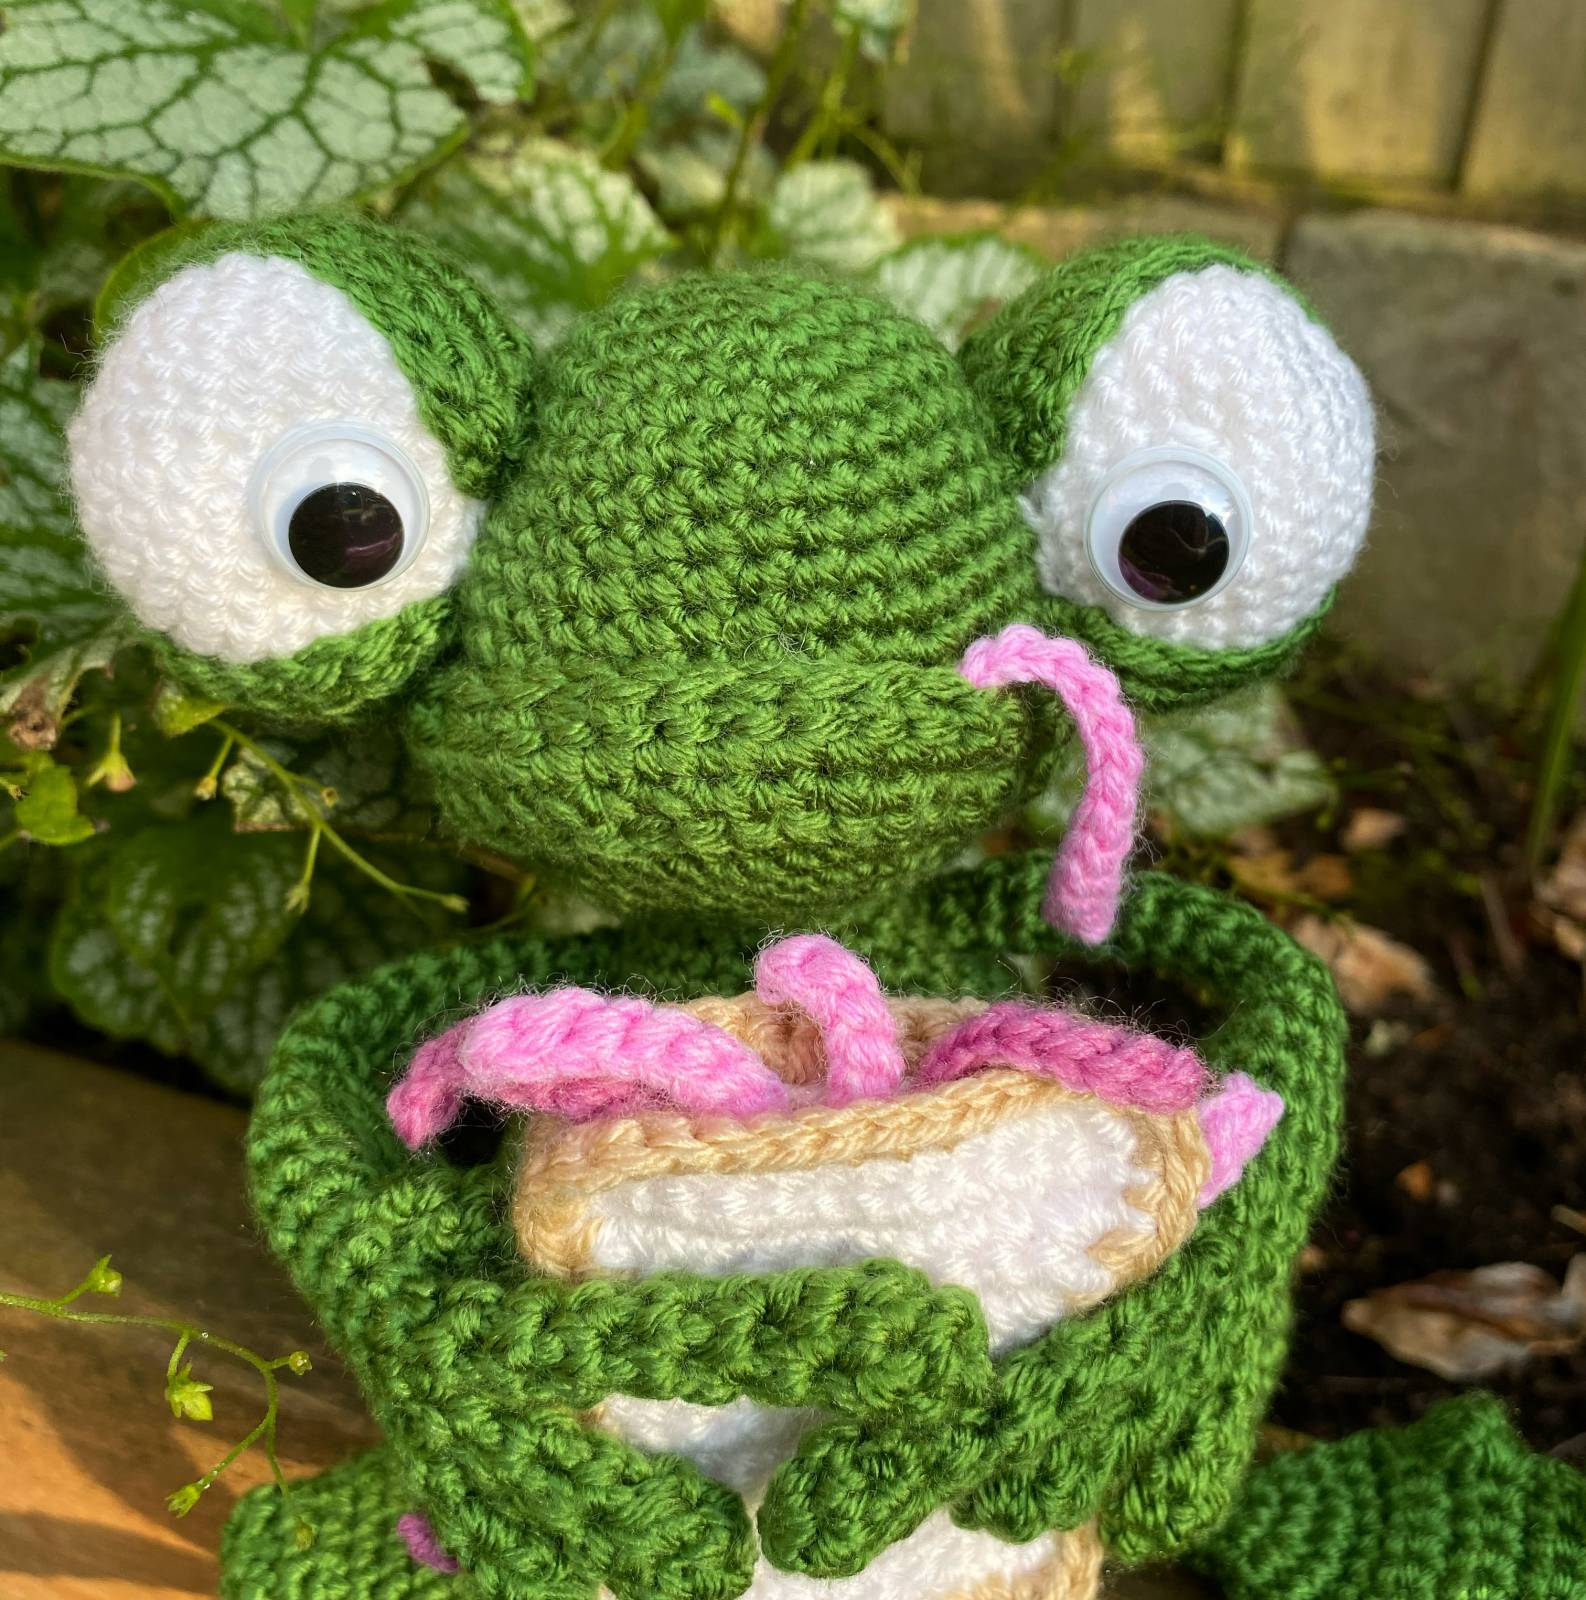 Amigurumi Frog Crochet Pattern Review by Becky Matley for Cottontail and Whiskers